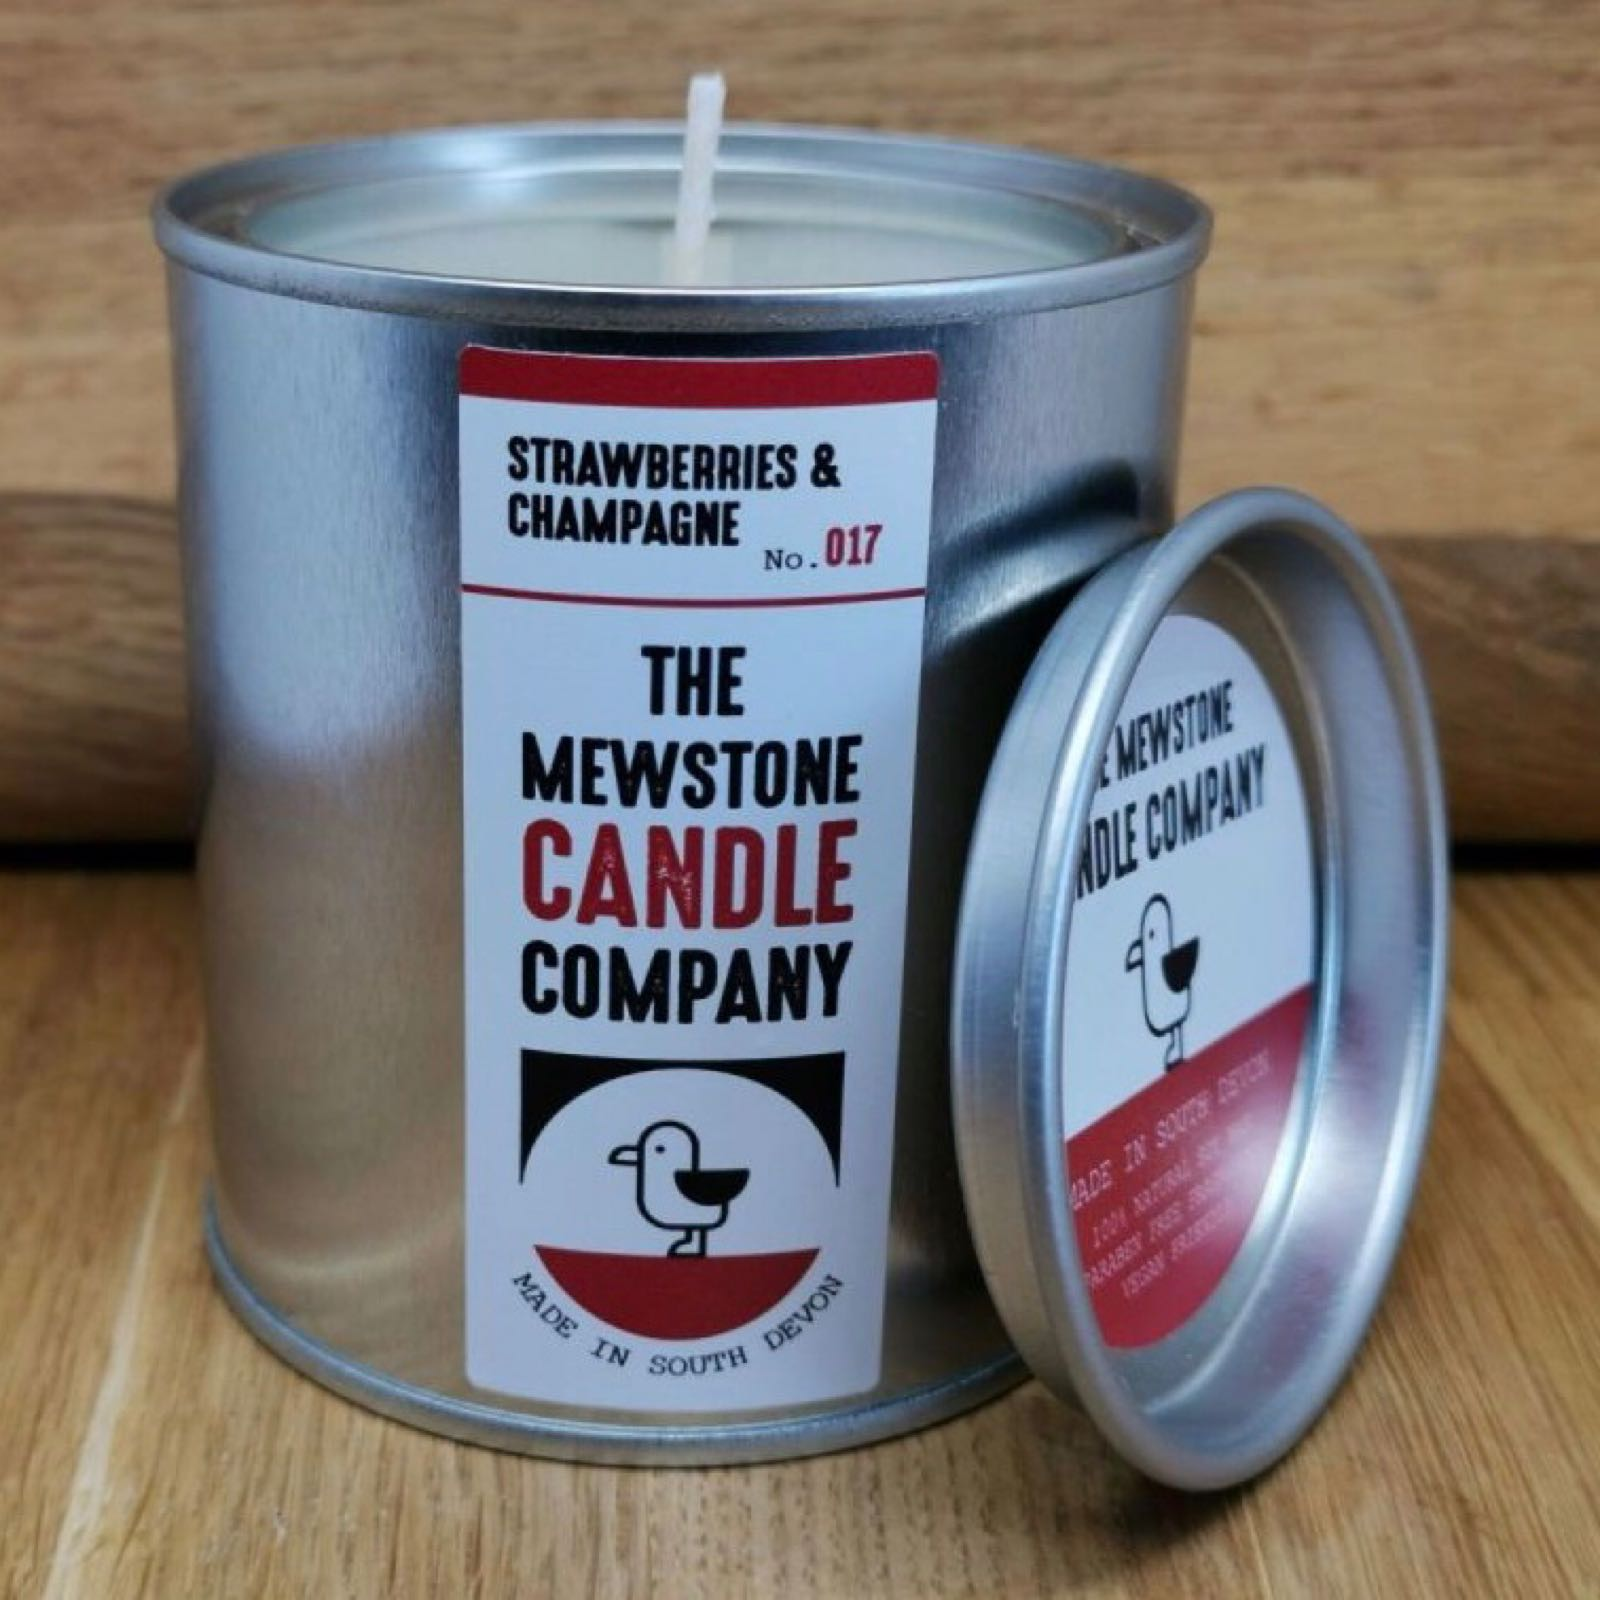 'Strawberries & Champagne' Mewstone Paint Tin Candle (Was £12.50)